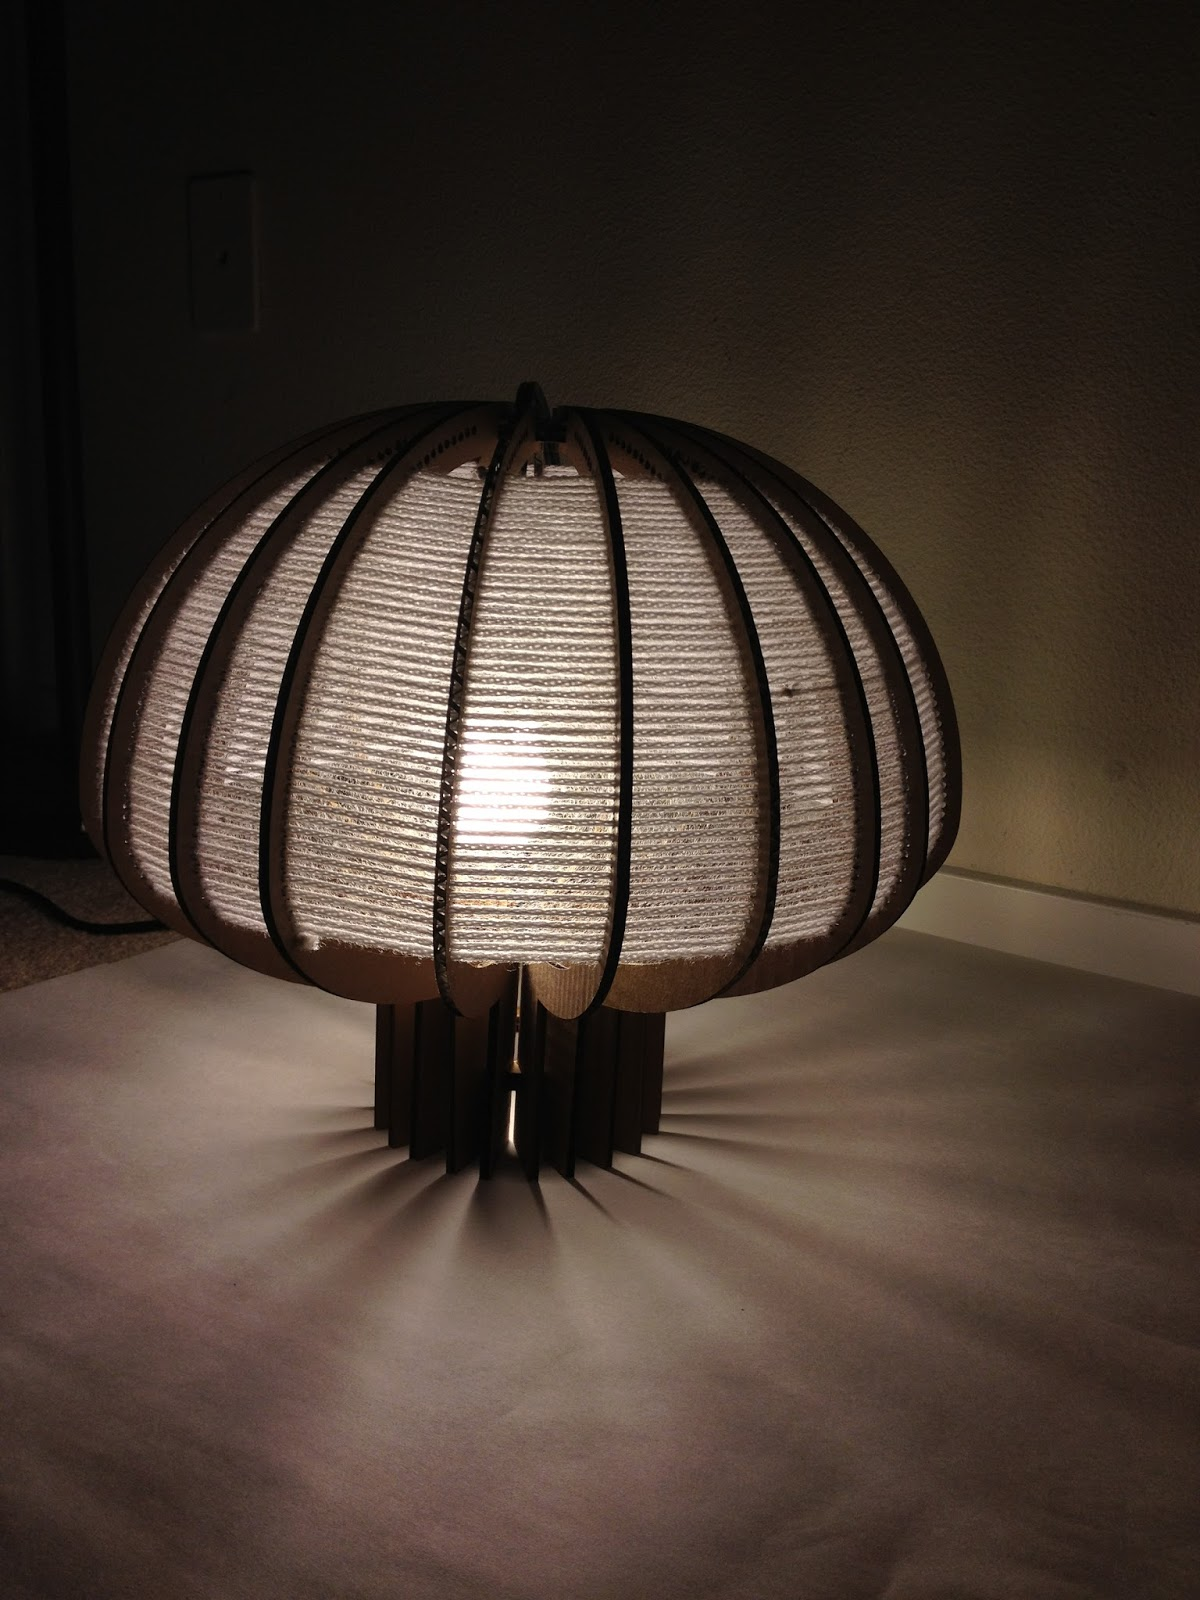 de by upcycled lampshade boxcrown gilbert lamp cardboard upcycledzine rooij gilbertsdesign